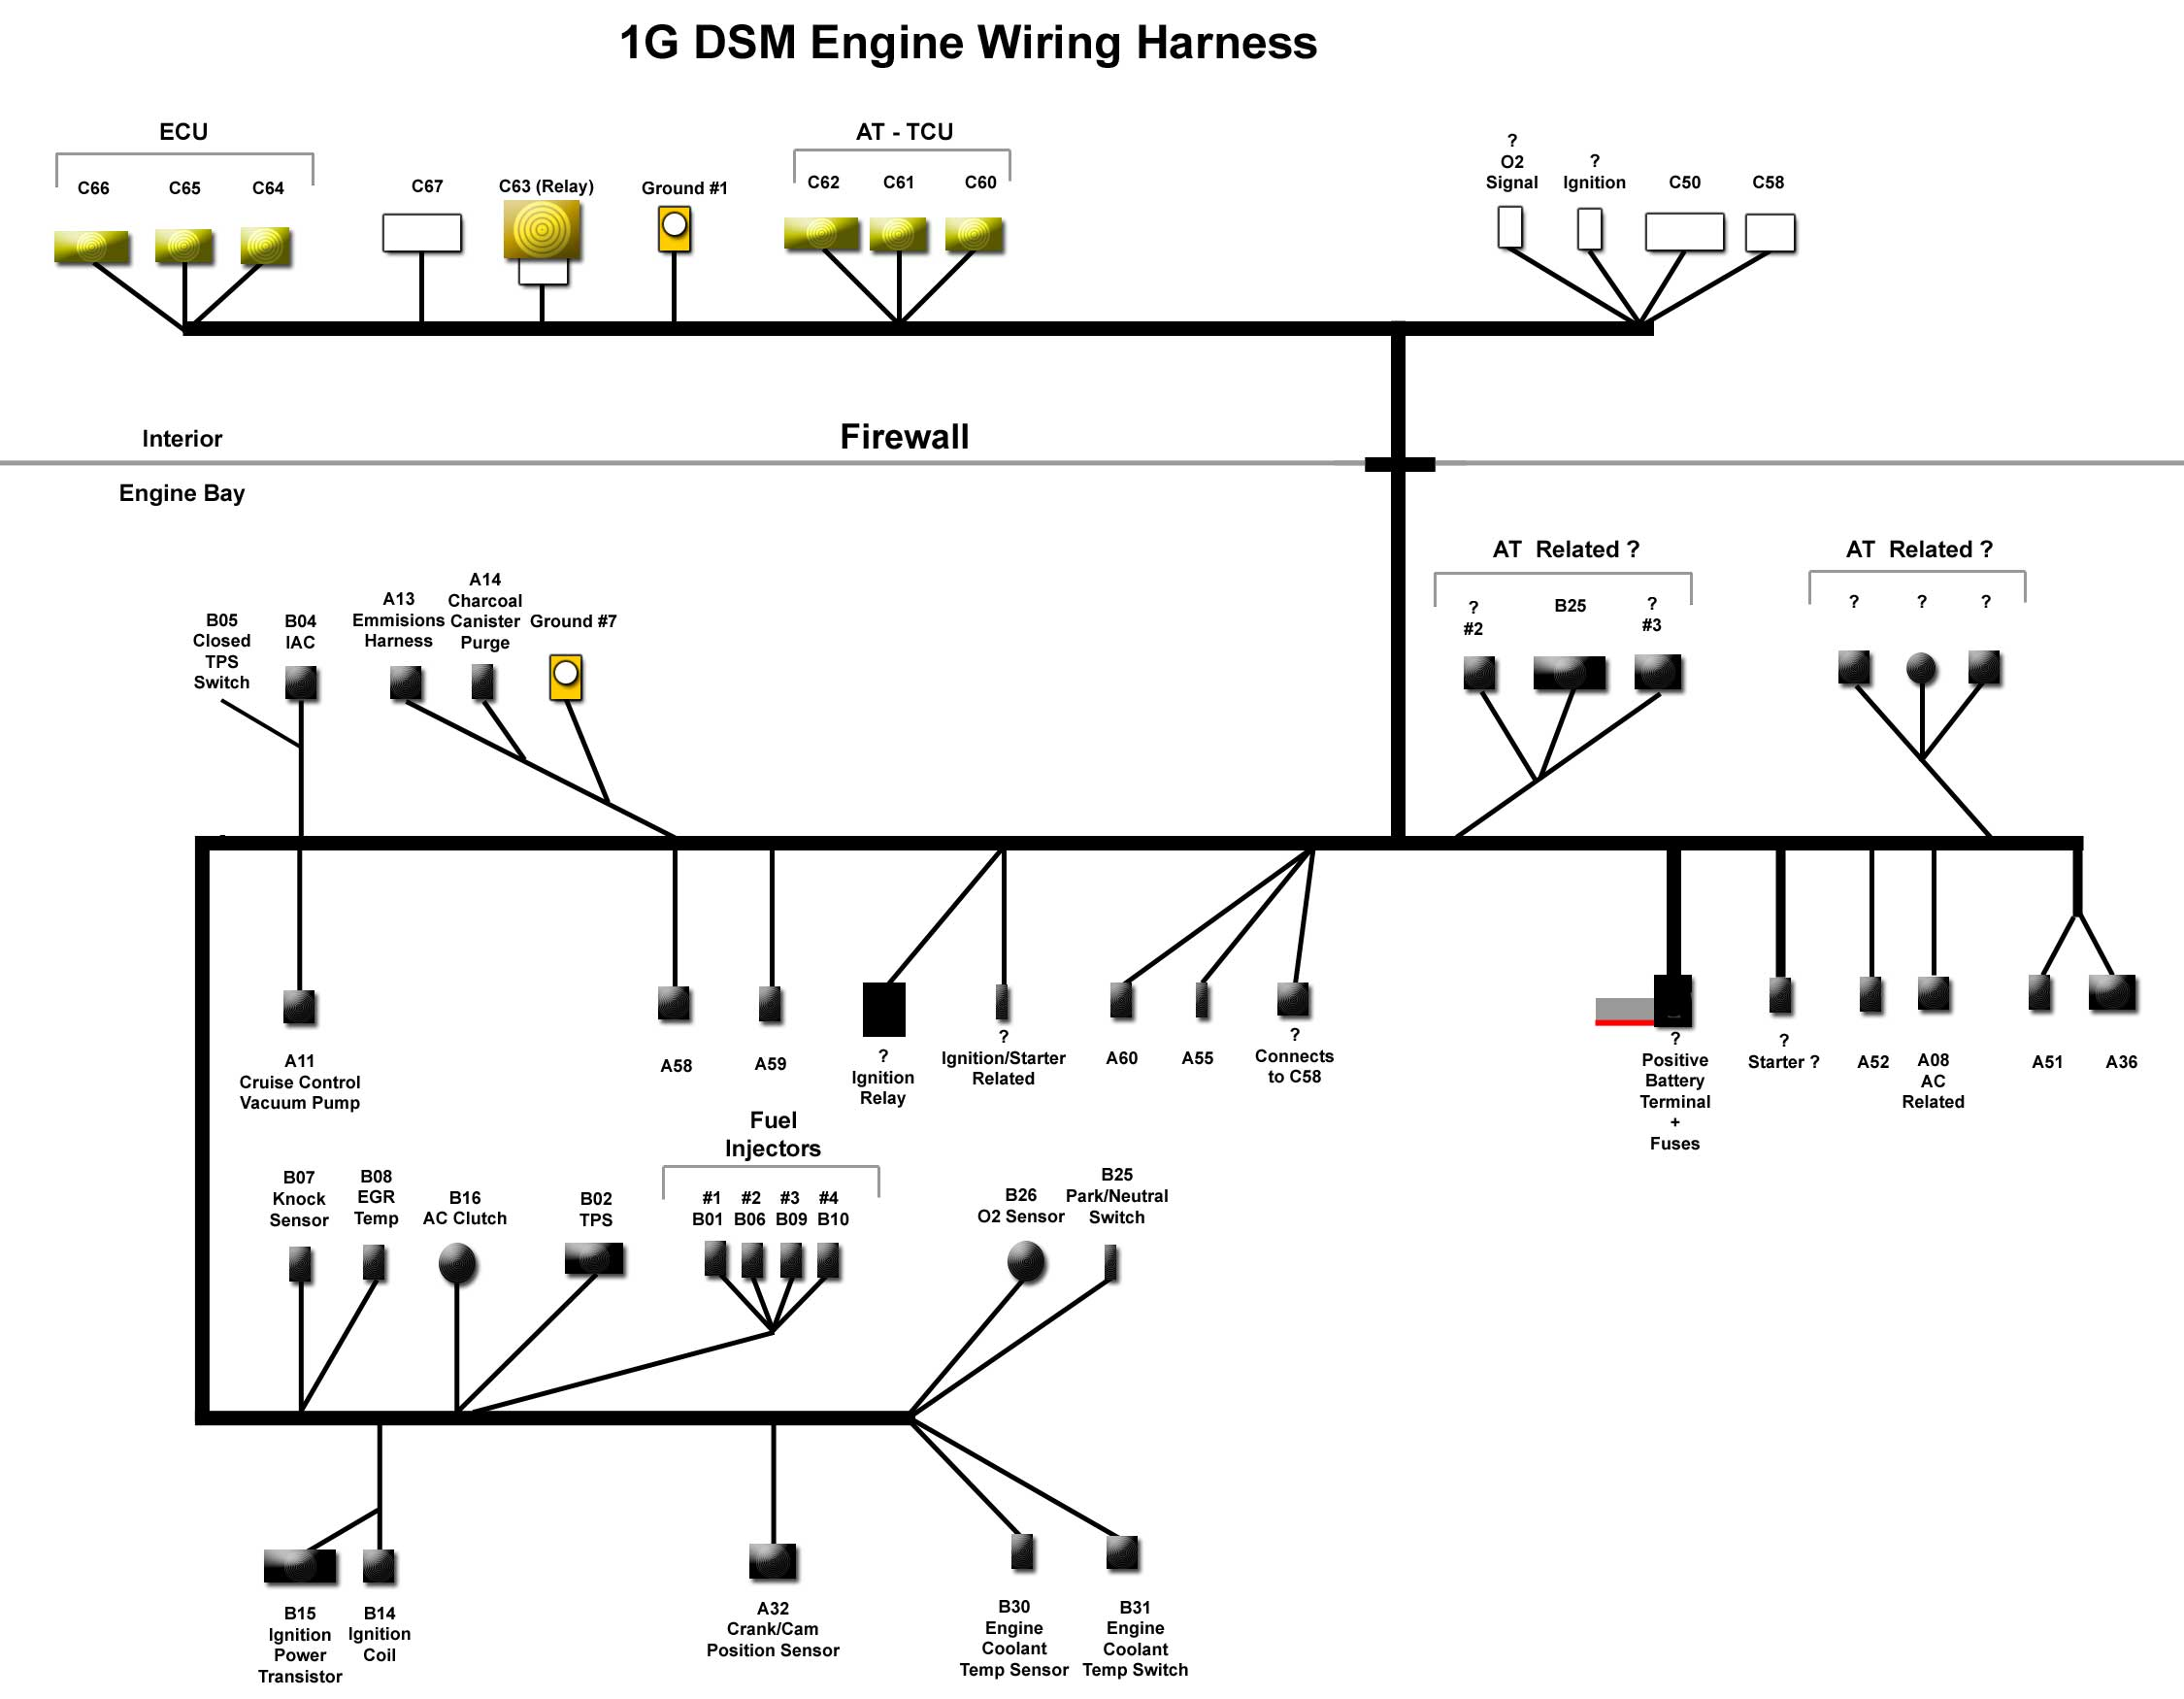 1G DSM EngineHarness 1gb dsm 4g63 turbo wiring harness diagram wiring loom diagram at reclaimingppi.co